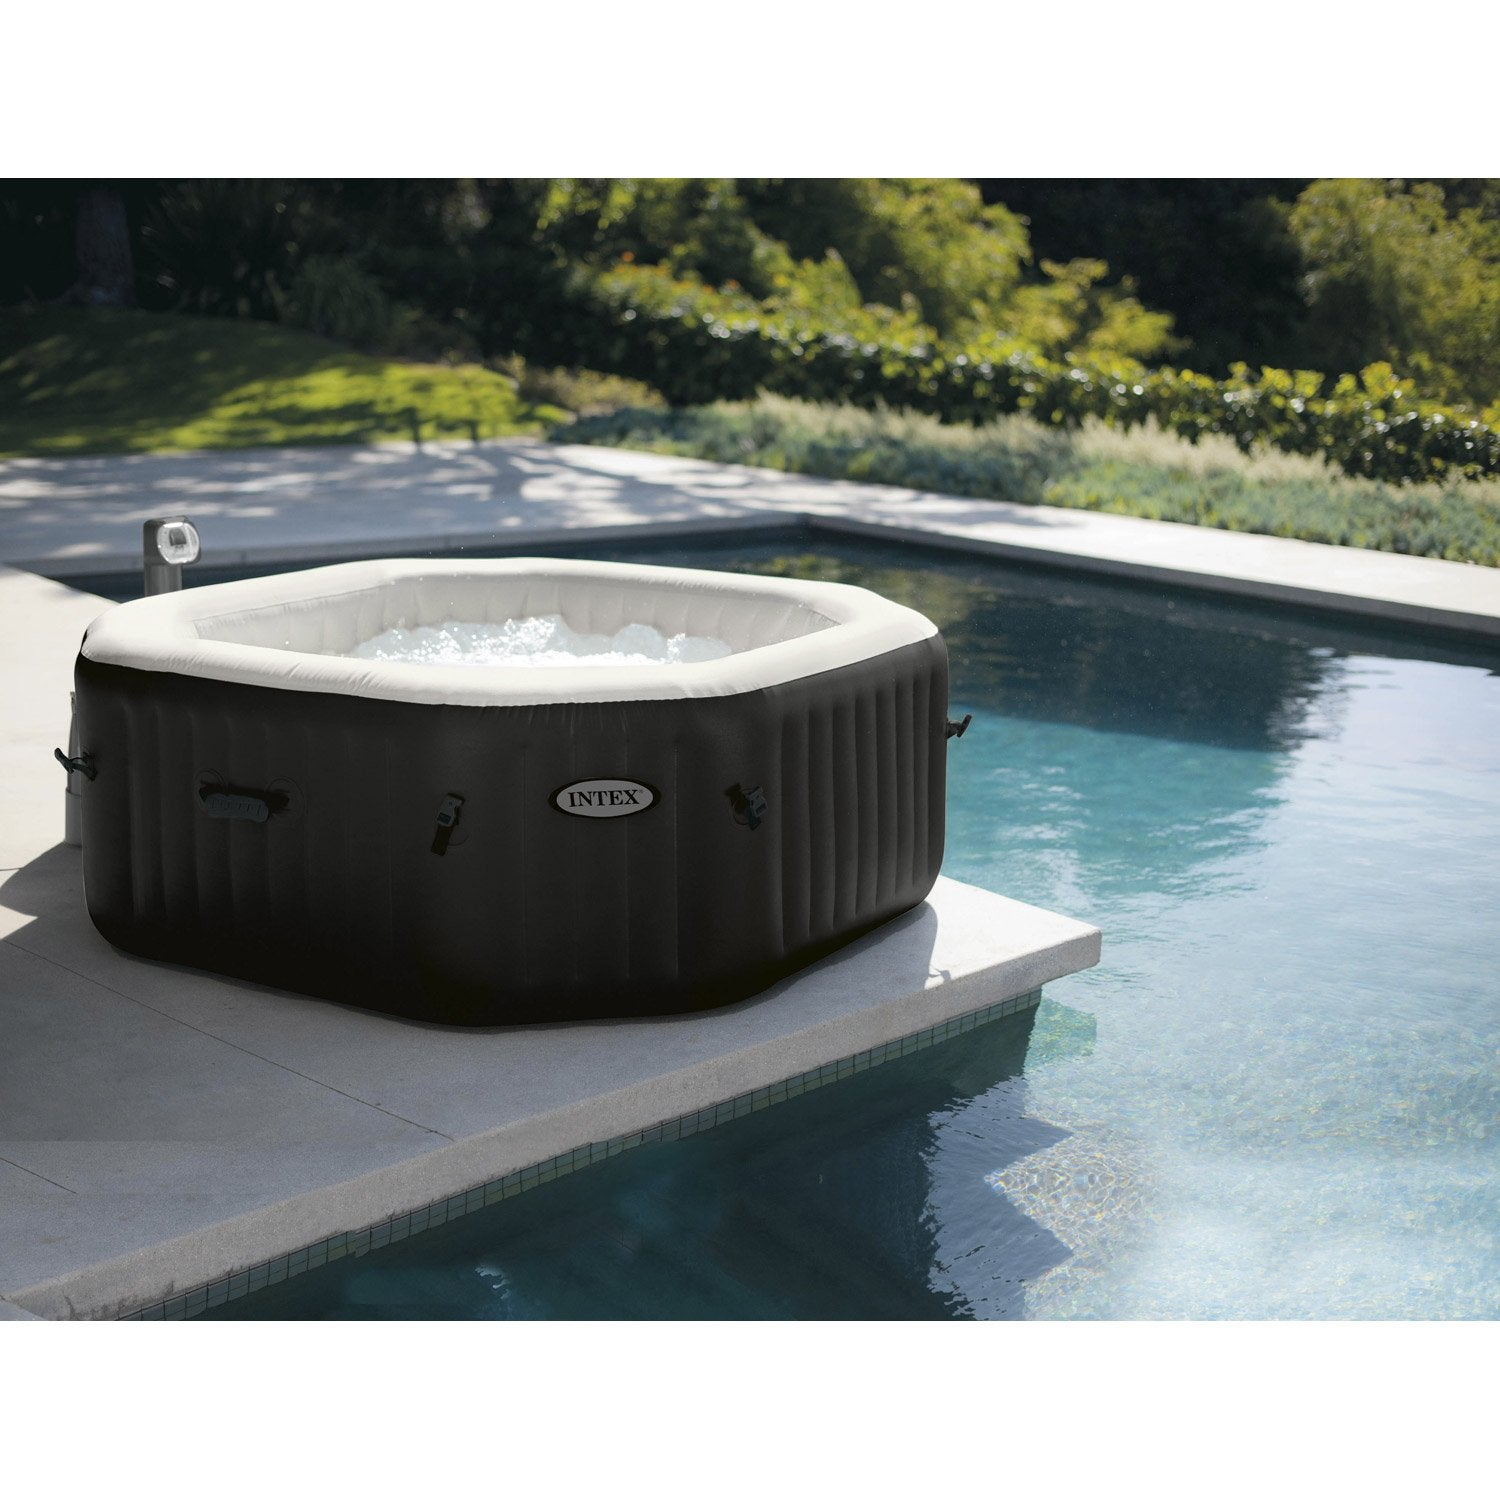 Spa gonflable intex purespa bulles octogonale 6 places assises leroy merlin for Prix jacuzzi exterieur